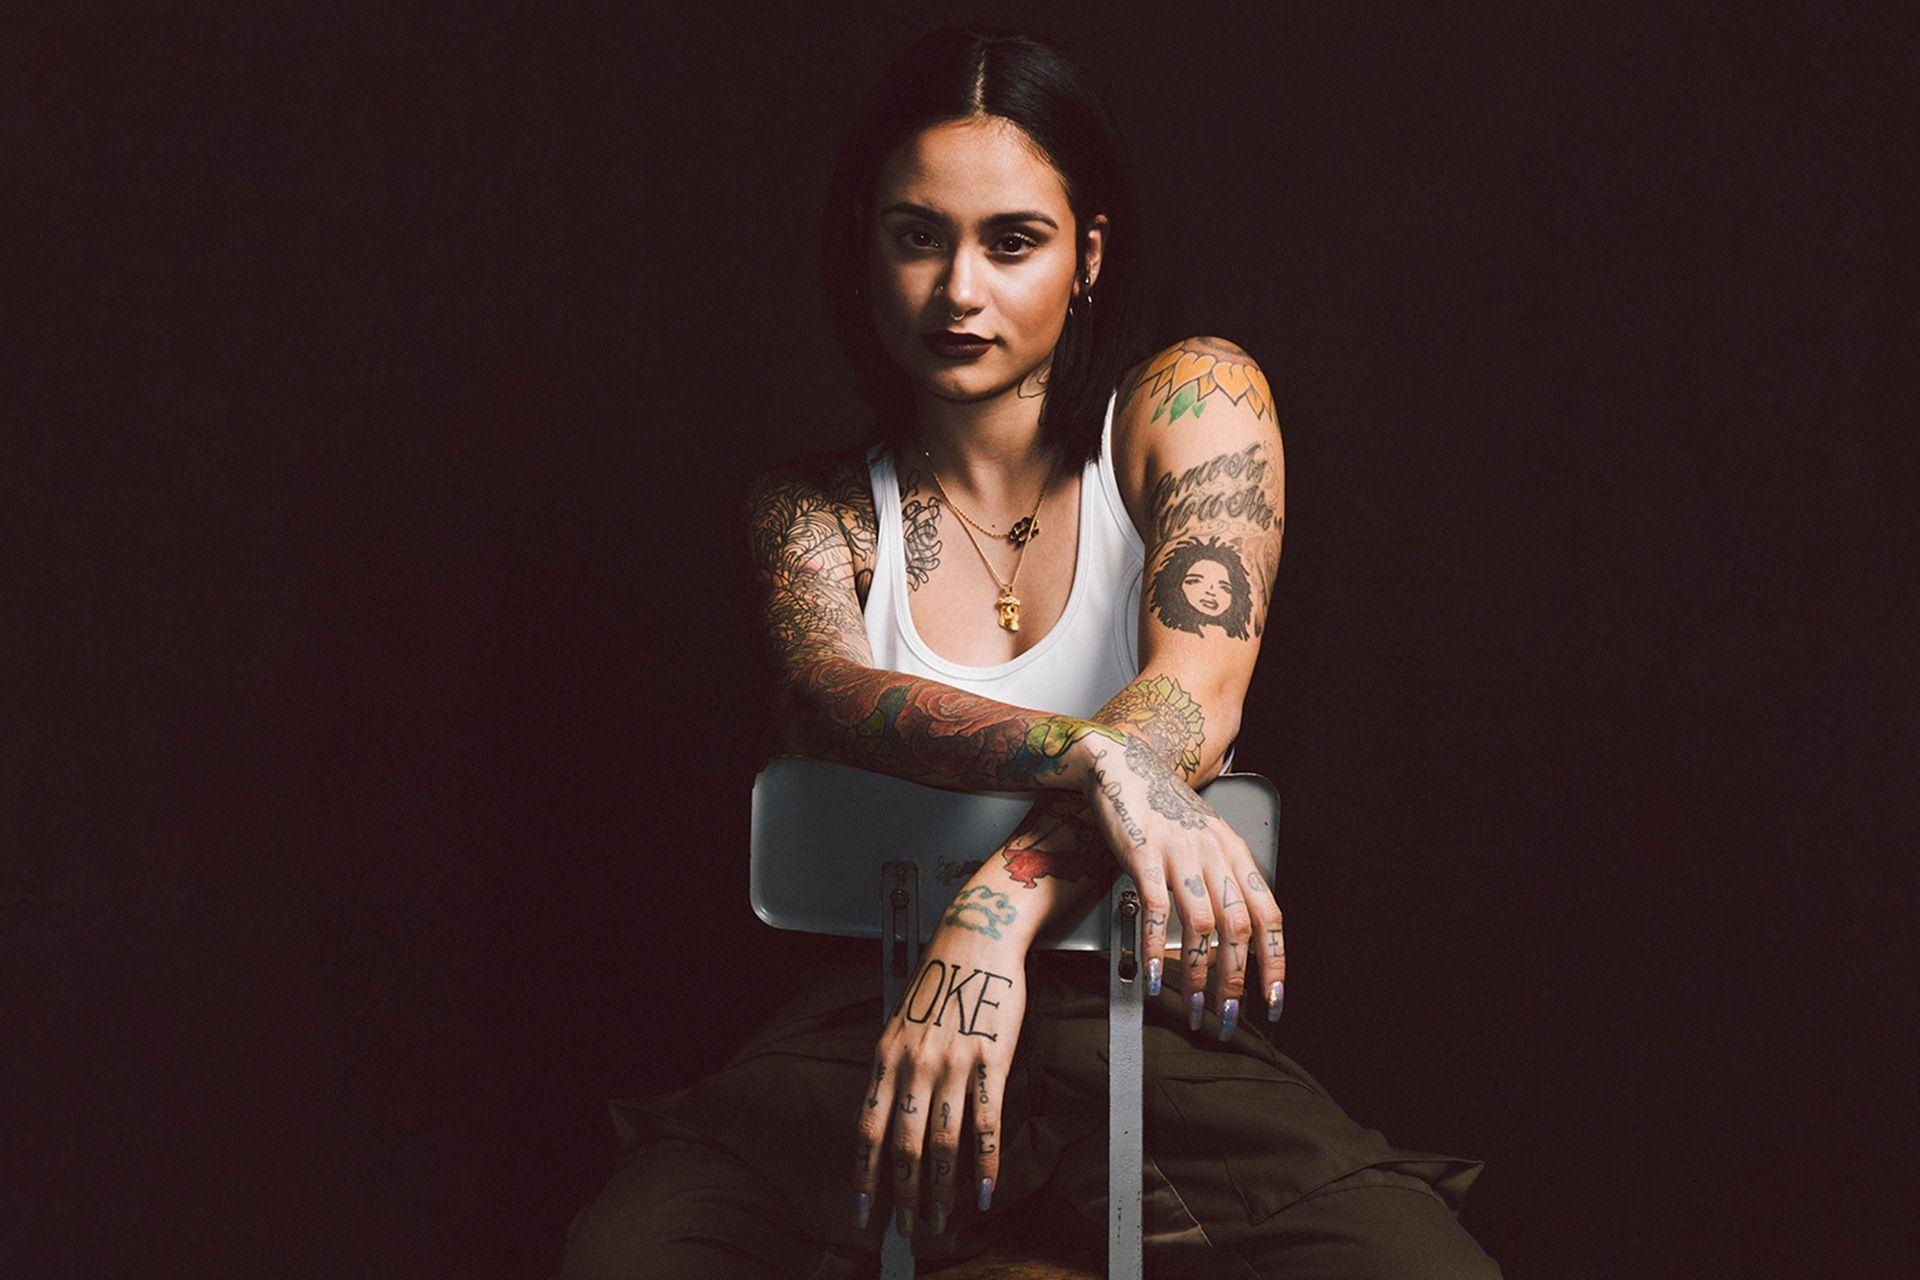 Kehlani Wallpapers HD Backgrounds, Images, Pics, Photos Free ...